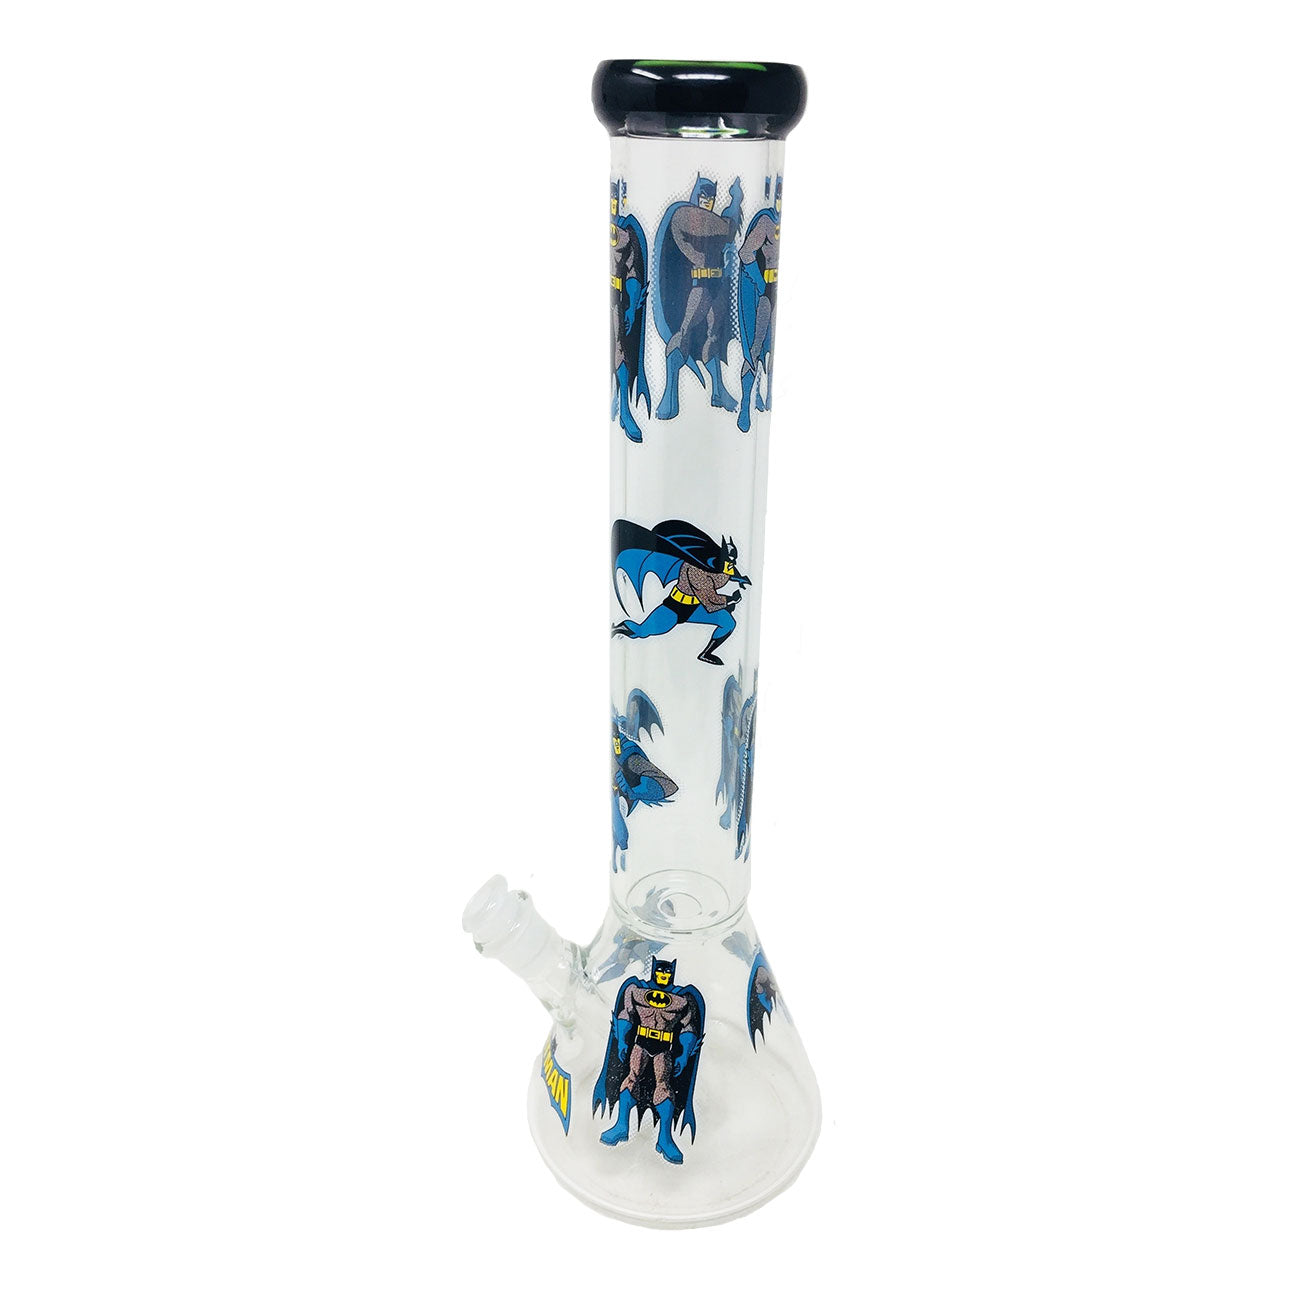 R3 Superhero Series Bongs